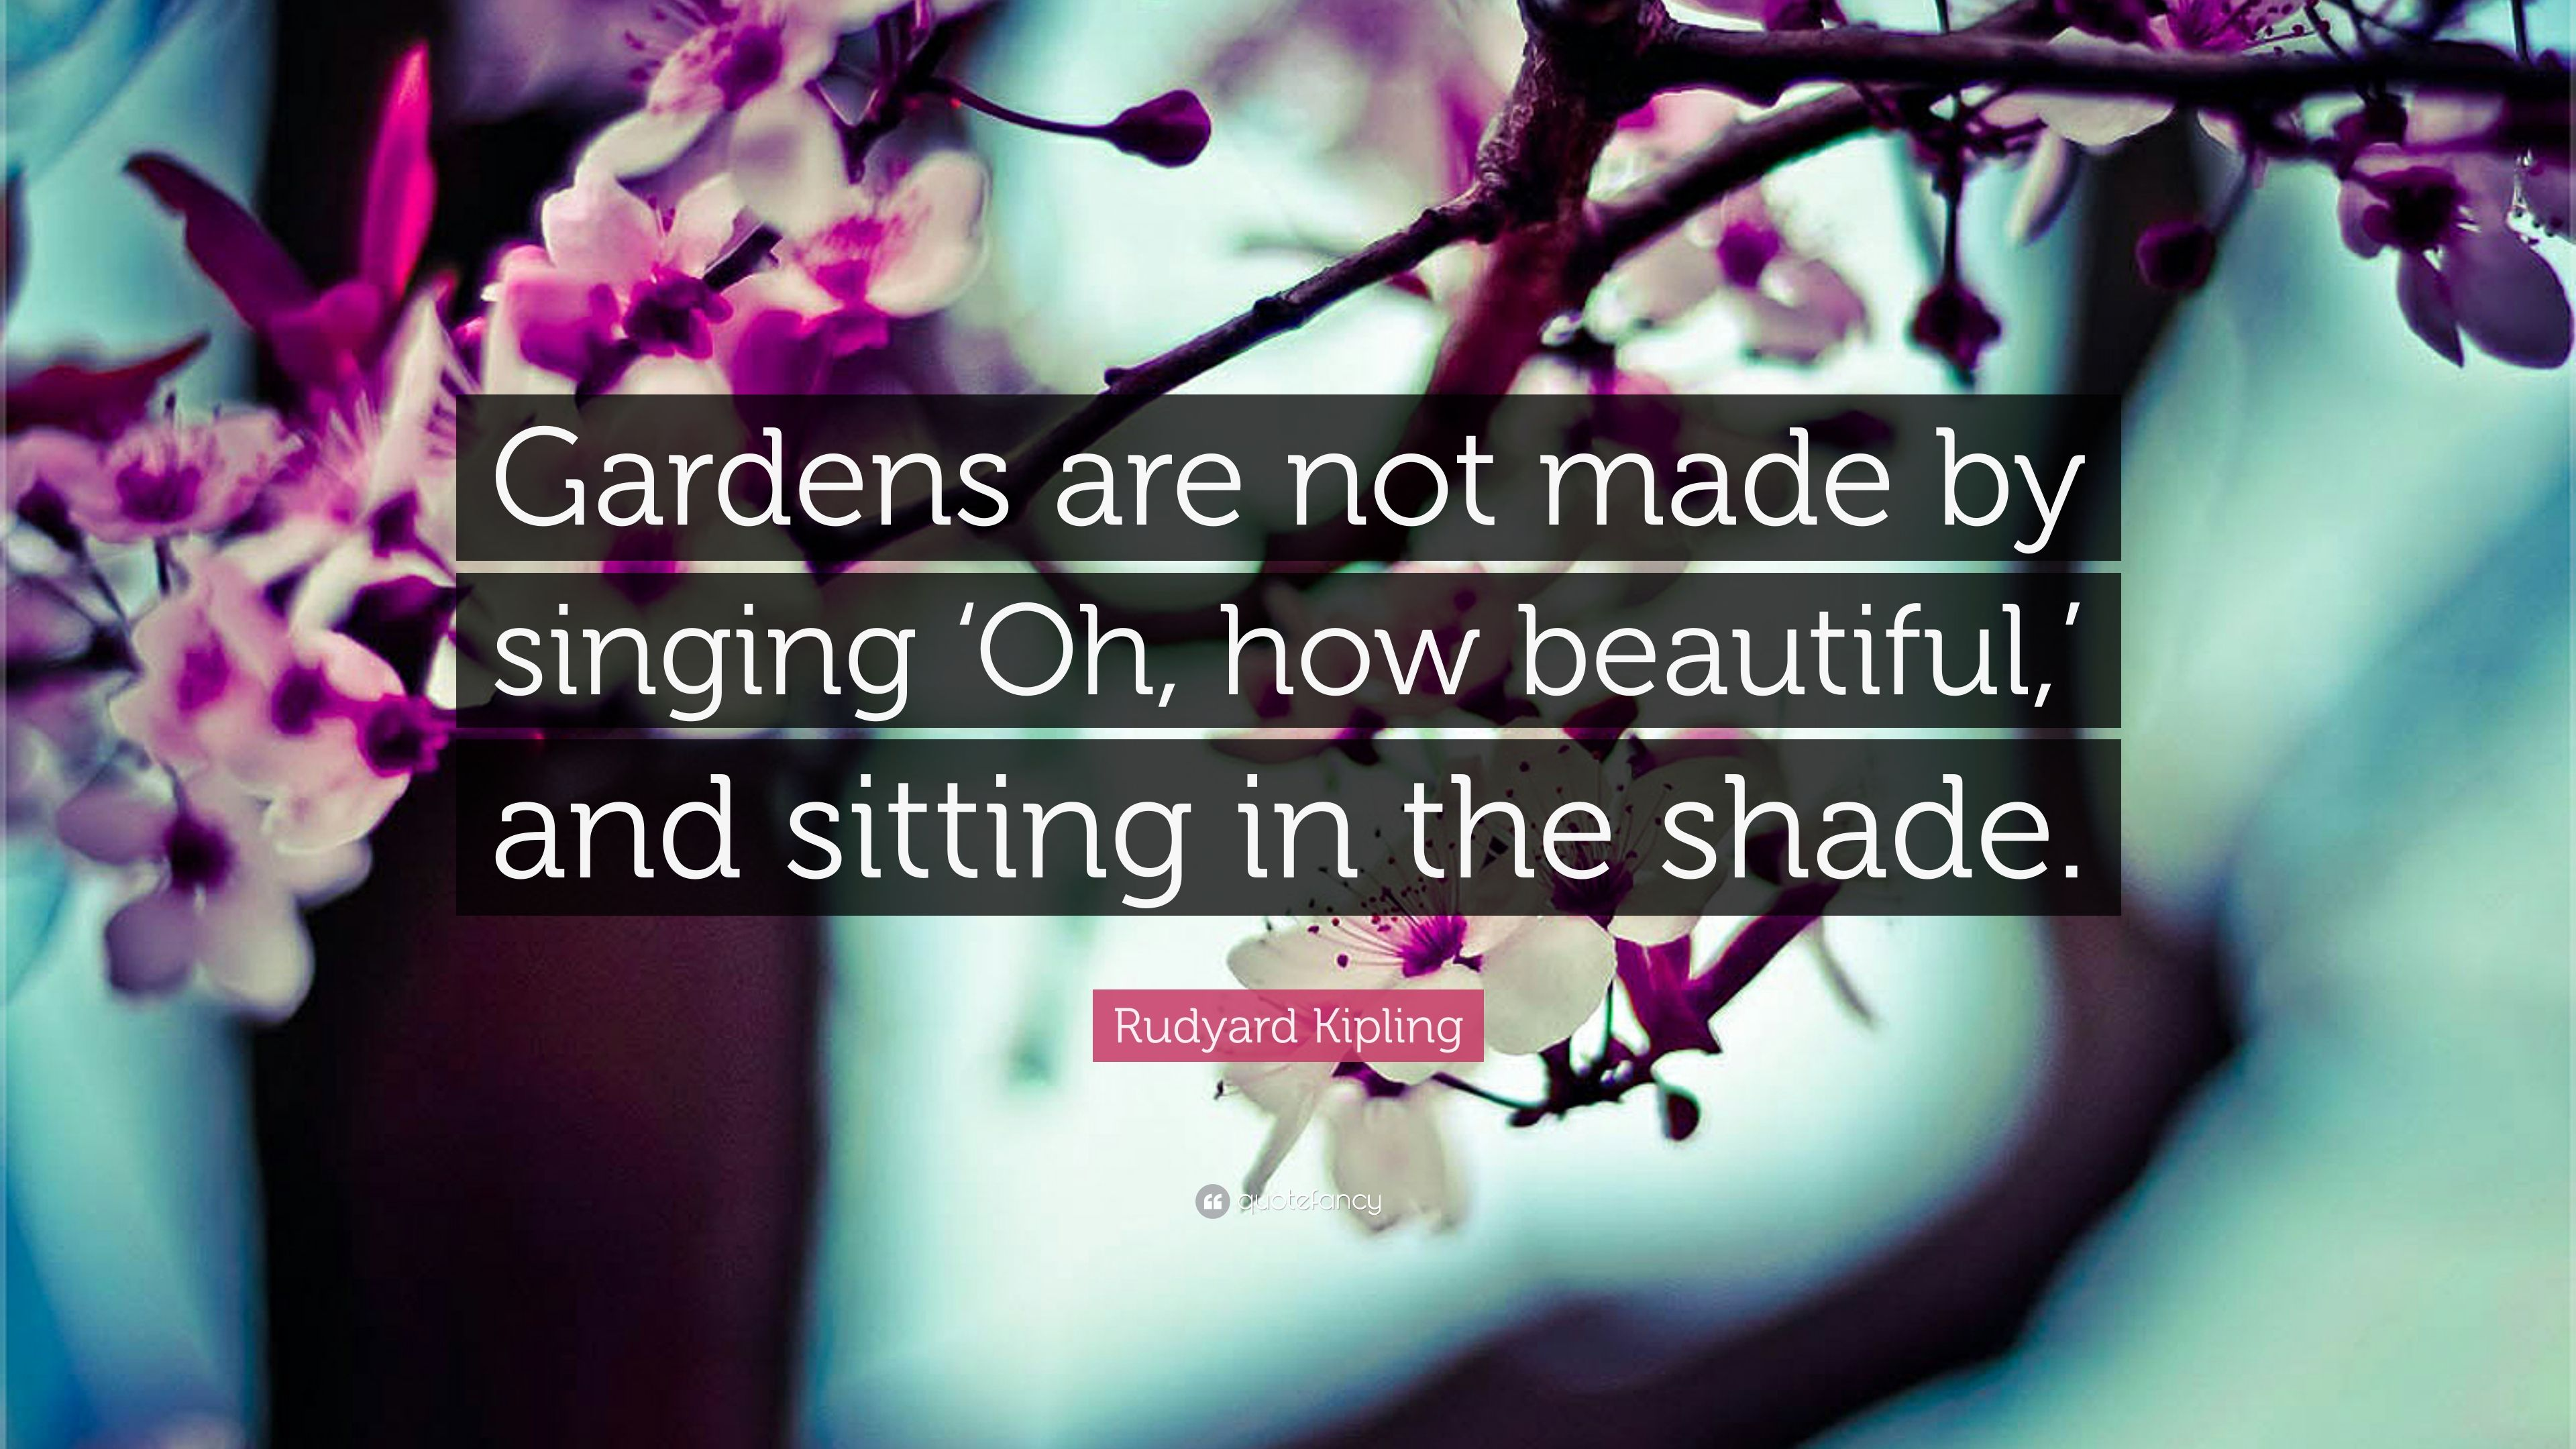 the quote garden quotes sayings quotations verses - HD 3840×2160